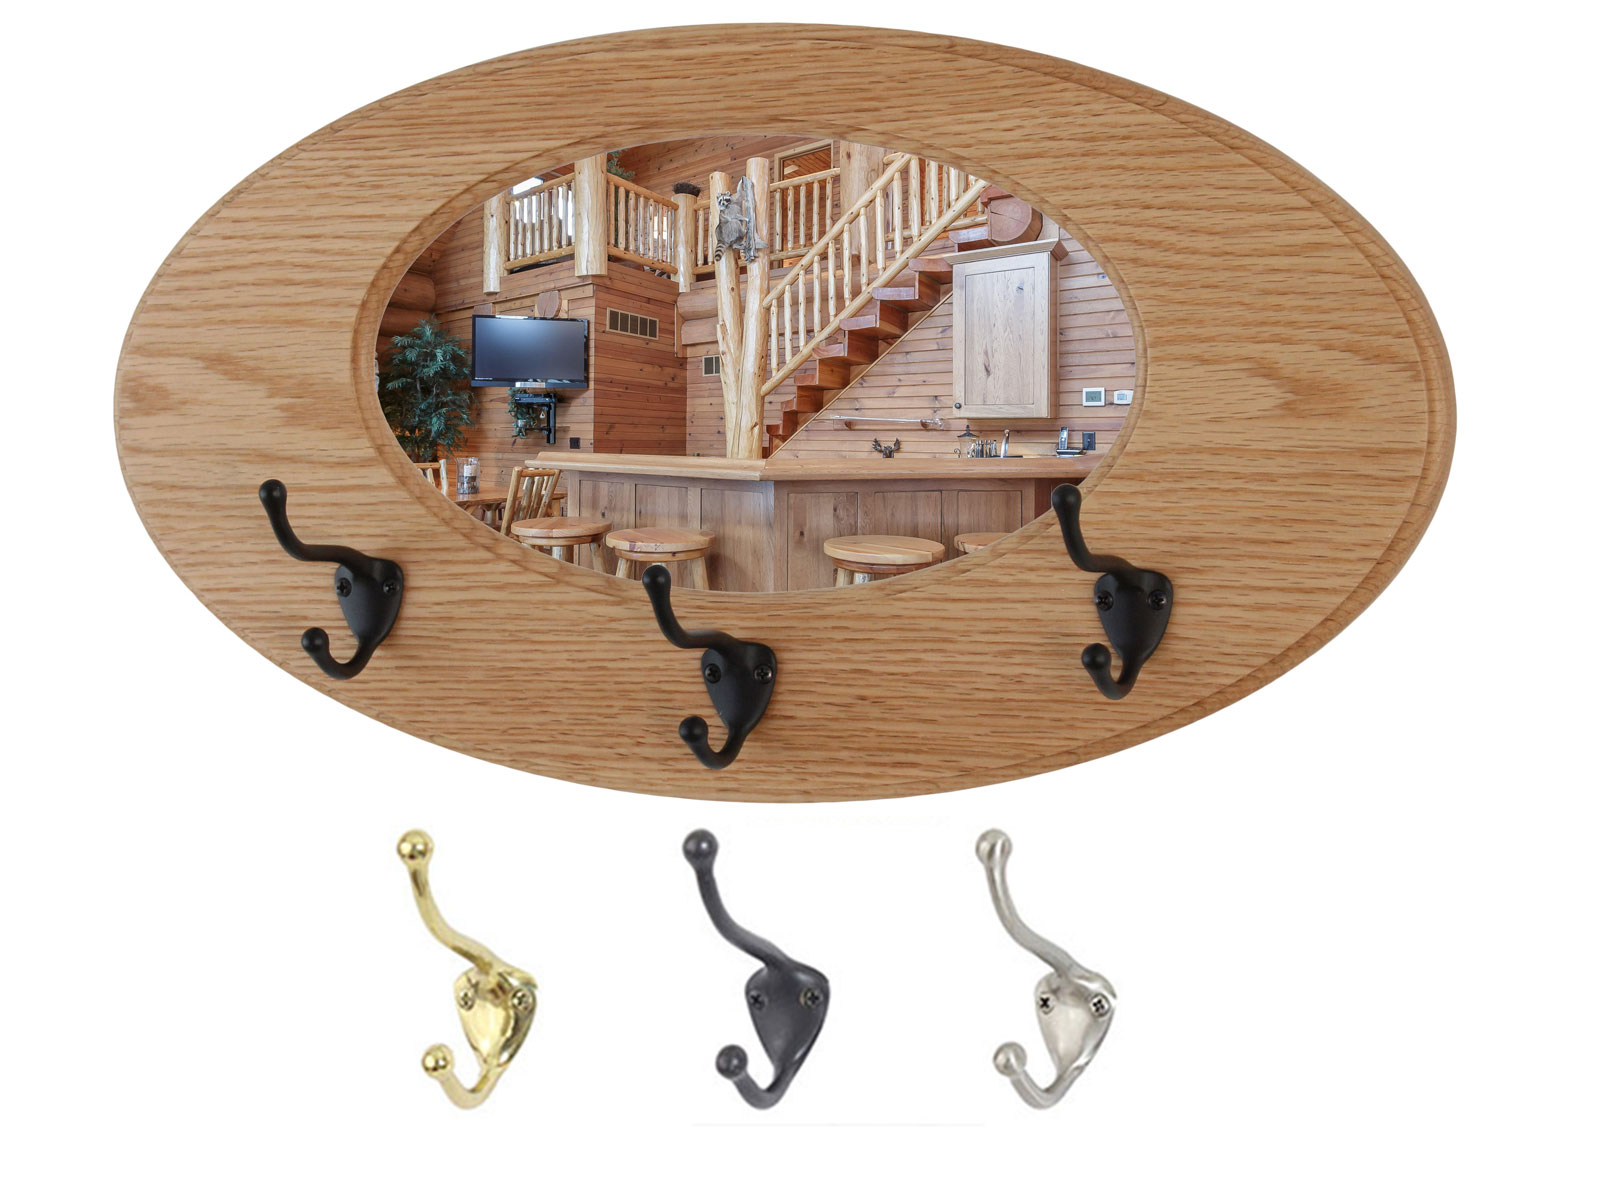 Oak Oval Mirror Coat Rack - Solid  Oak -  Hand Crafted in The USA  Select  Bronze , Solid Brass or Satin Nickel Hat and Coat Hooks